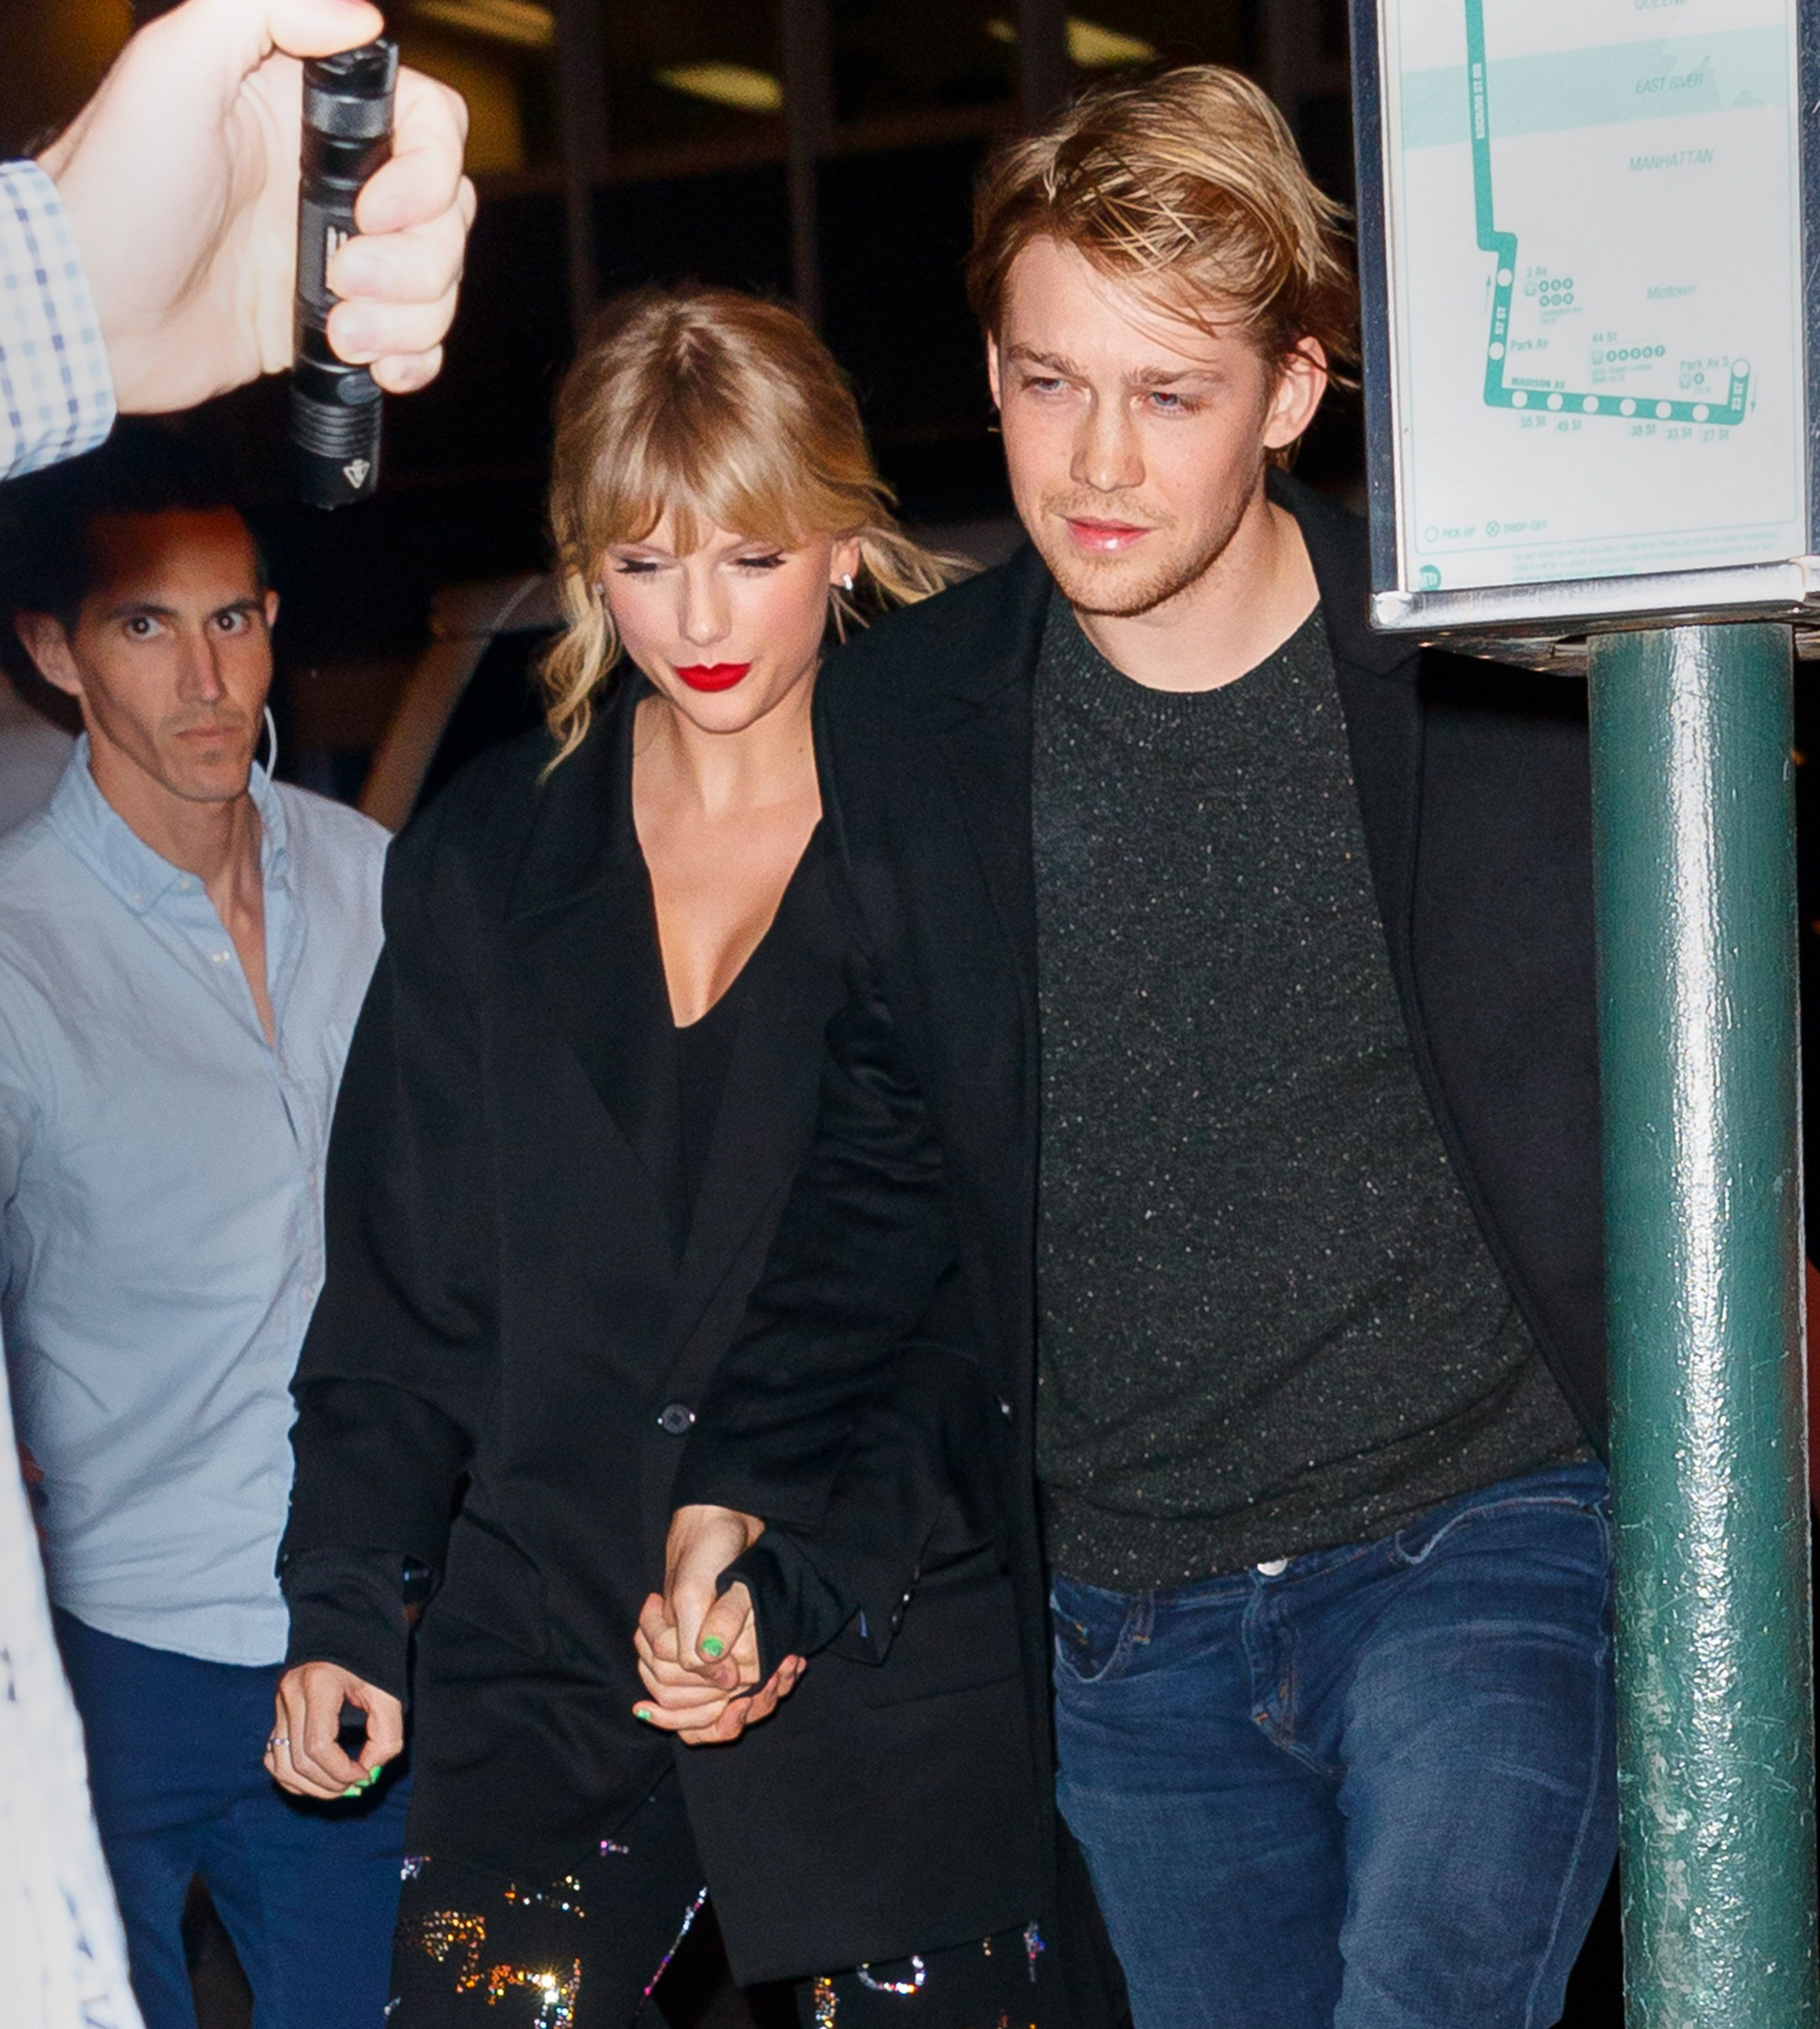 Taylor Swift Leaves Fans Wondering If She S Engaged After Stepping Out With Joe Alwyn After Snl